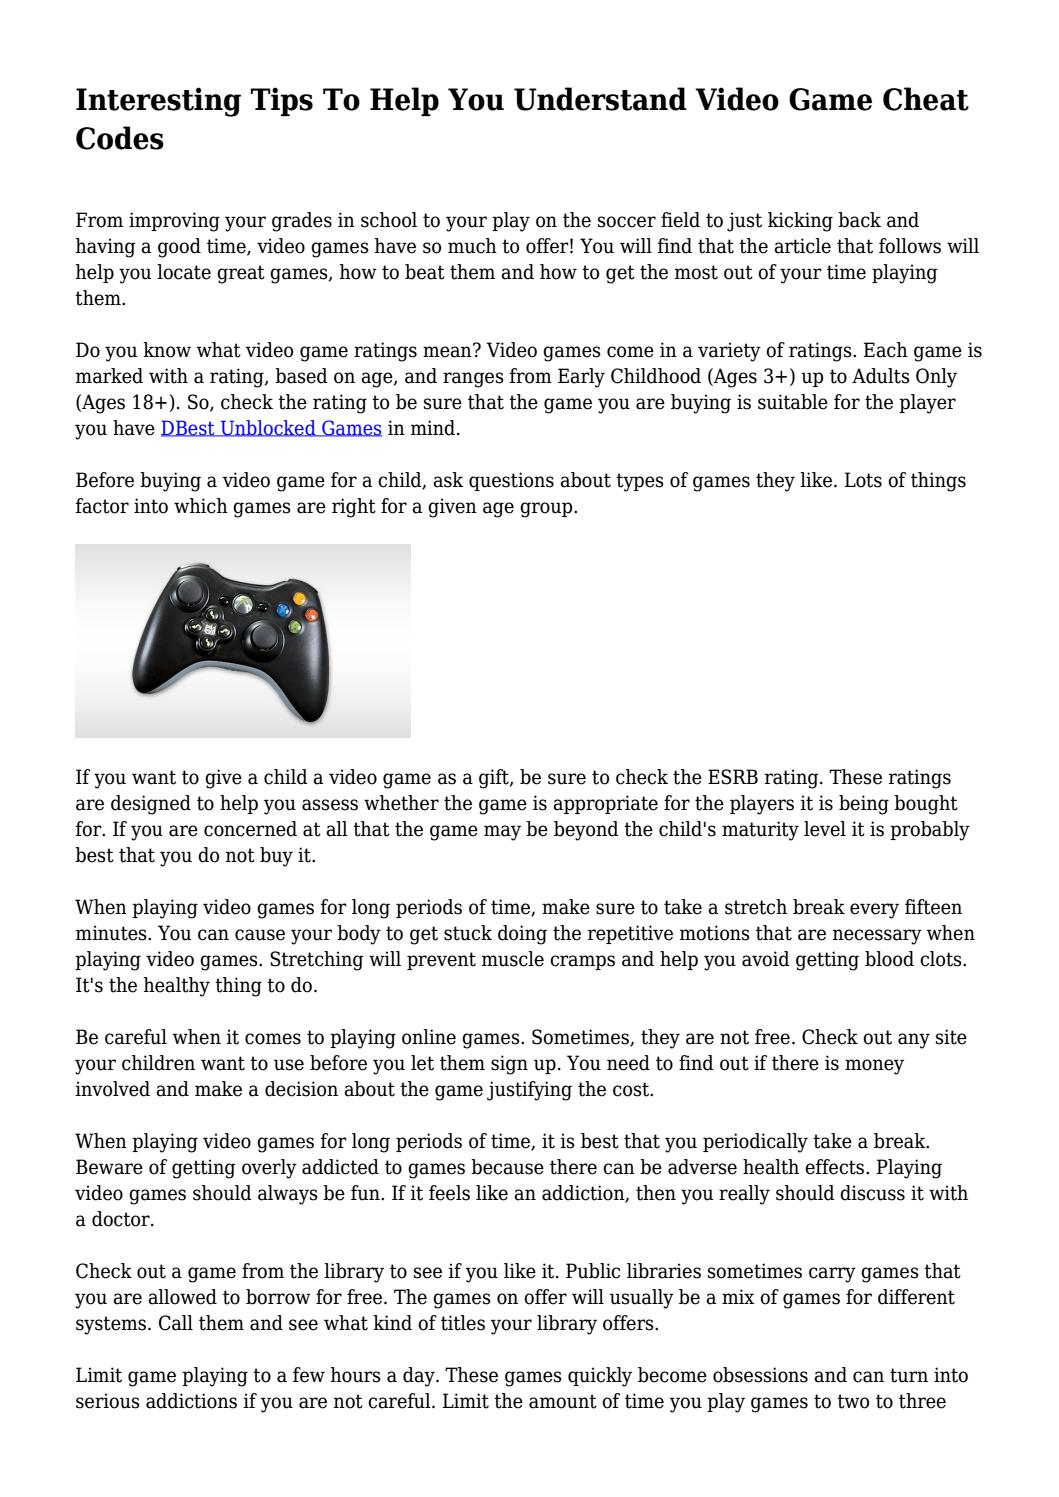 Interesting Tips To Help You Understand Video Game Cheat